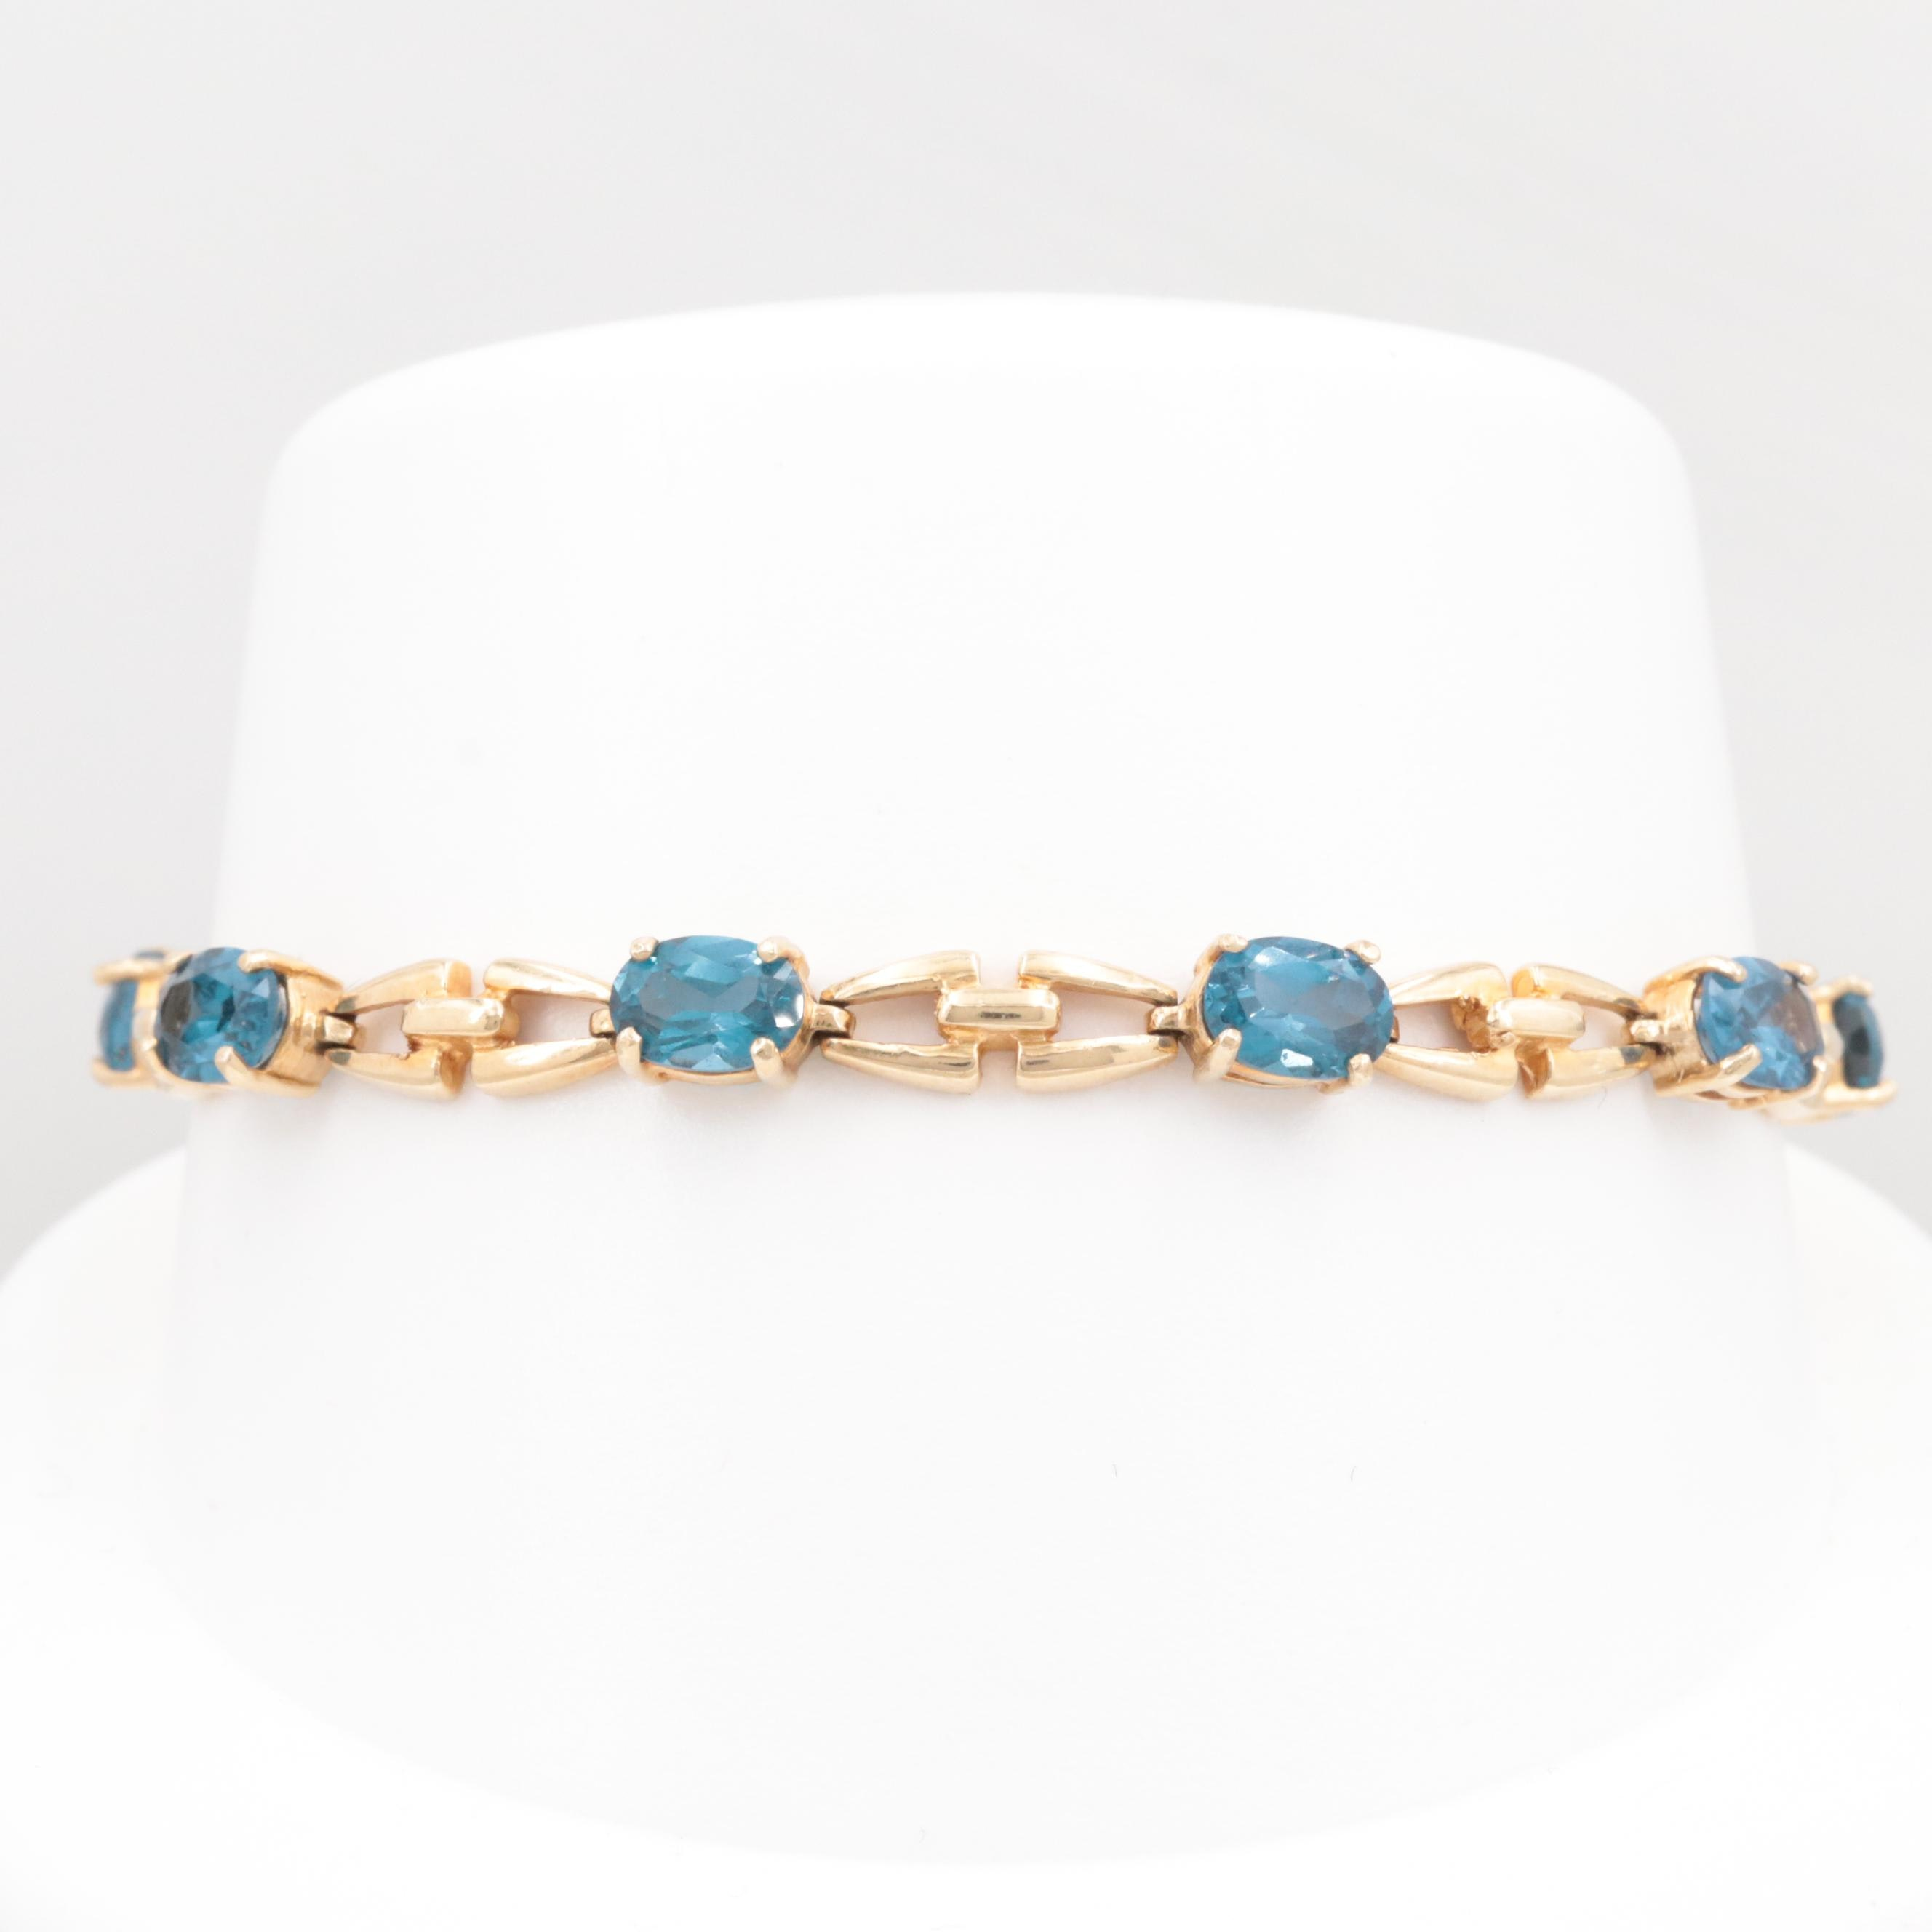 10K Yellow Gold Synthetic Spinel Bracelet